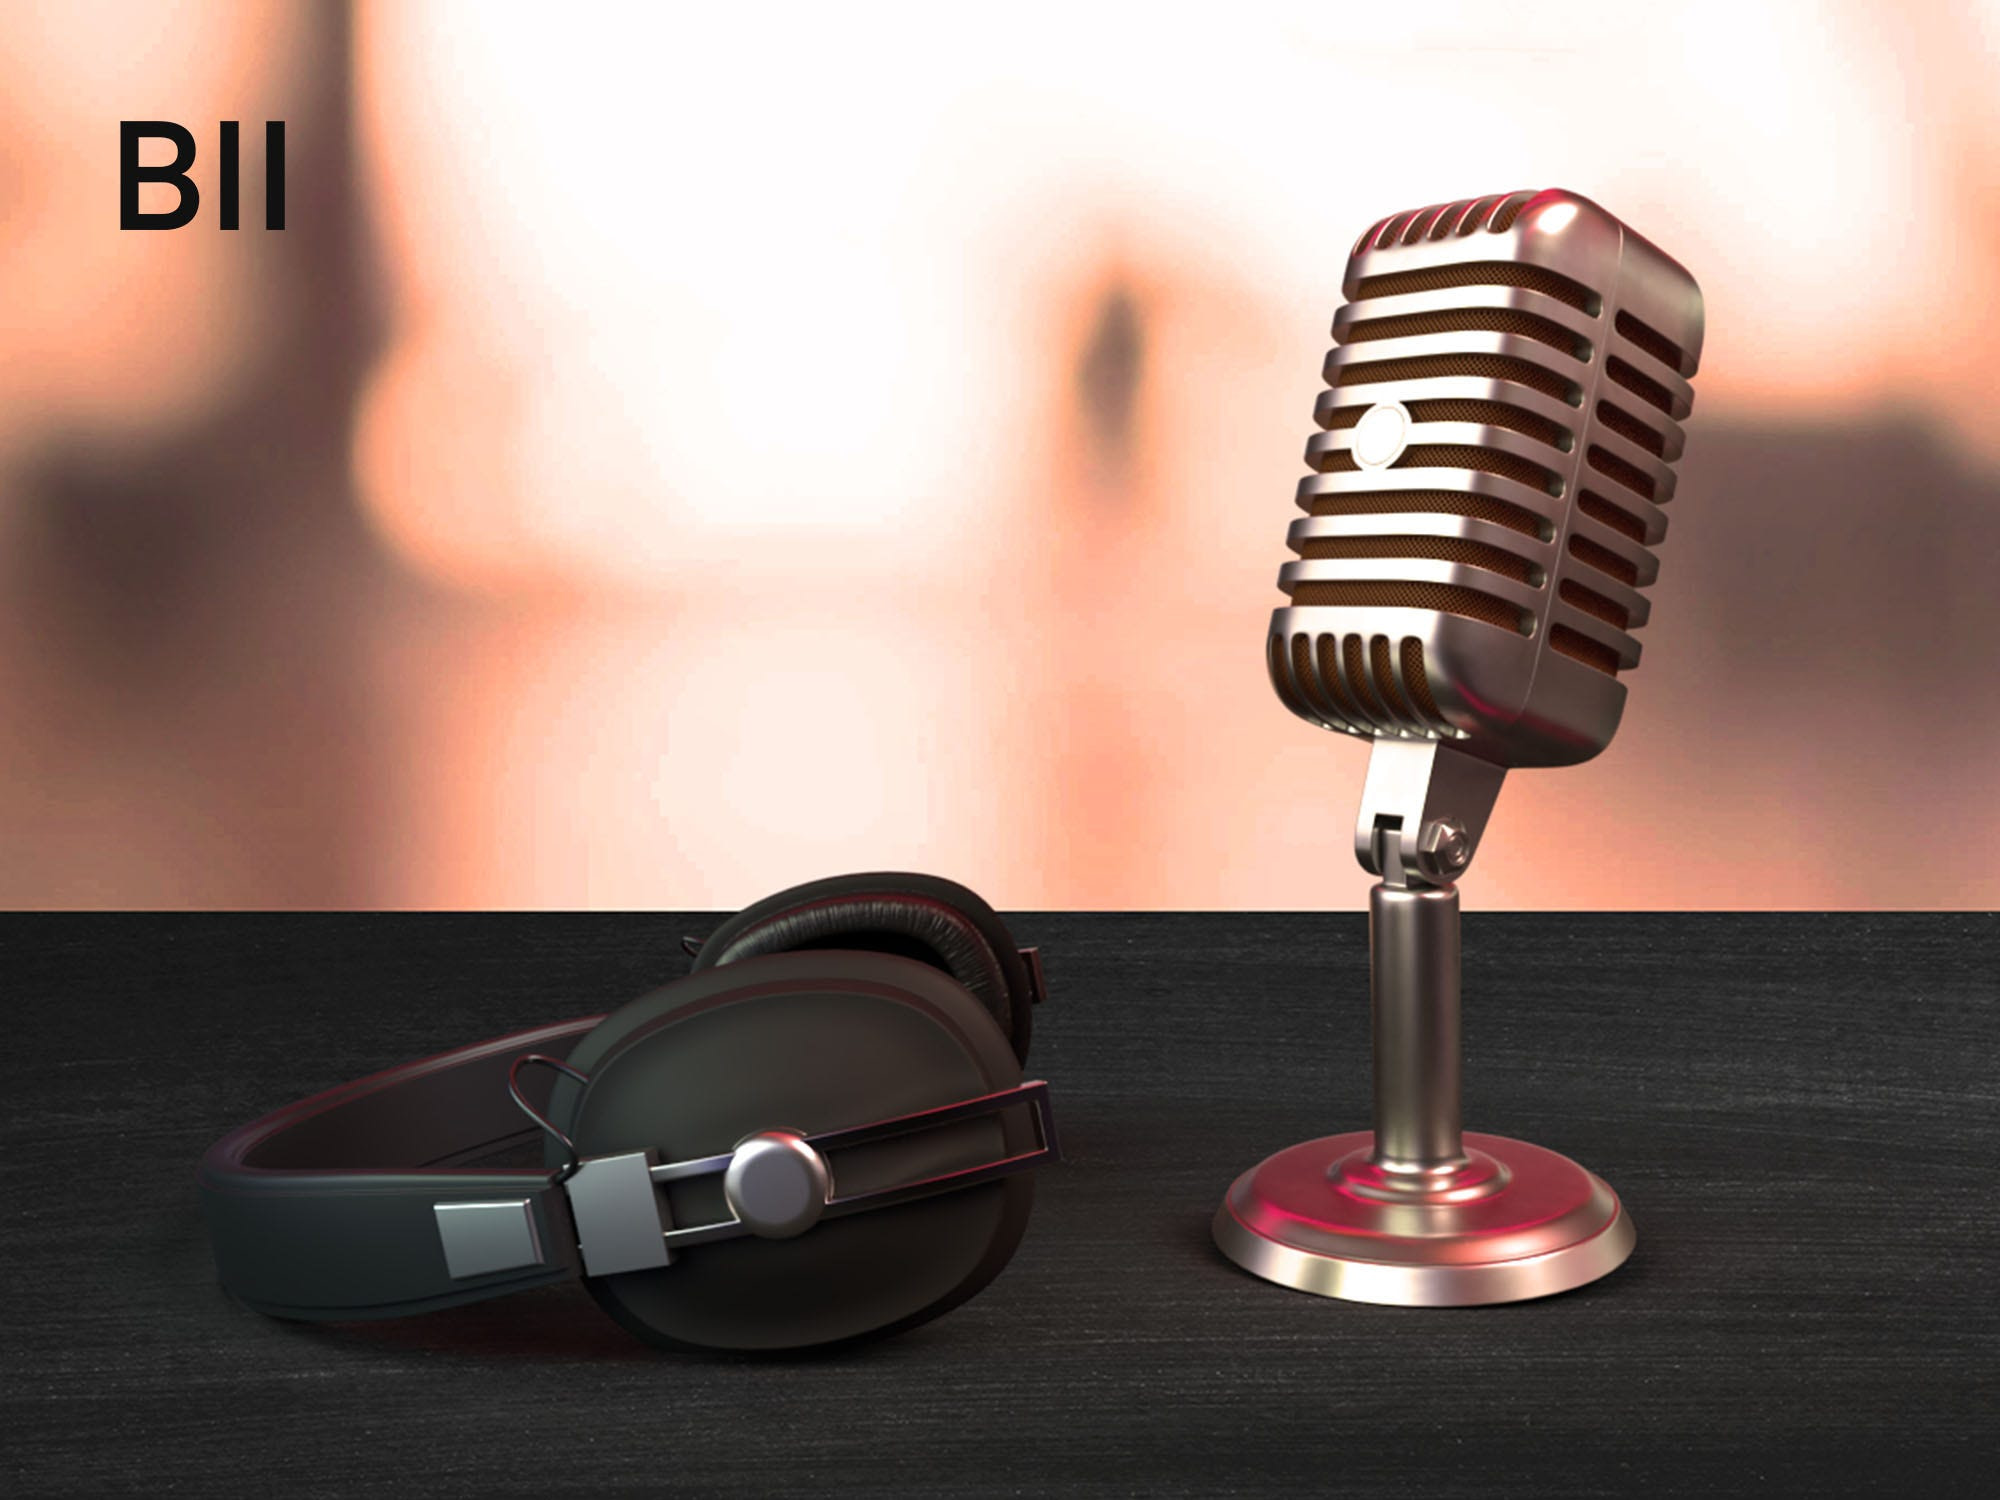 PODCAST INDUSTRY REPORT: Podcasting will be a $1 billion industry by 2021 — here's how Spotify, Apple, and others are innovating to make it happen and where brands fit in